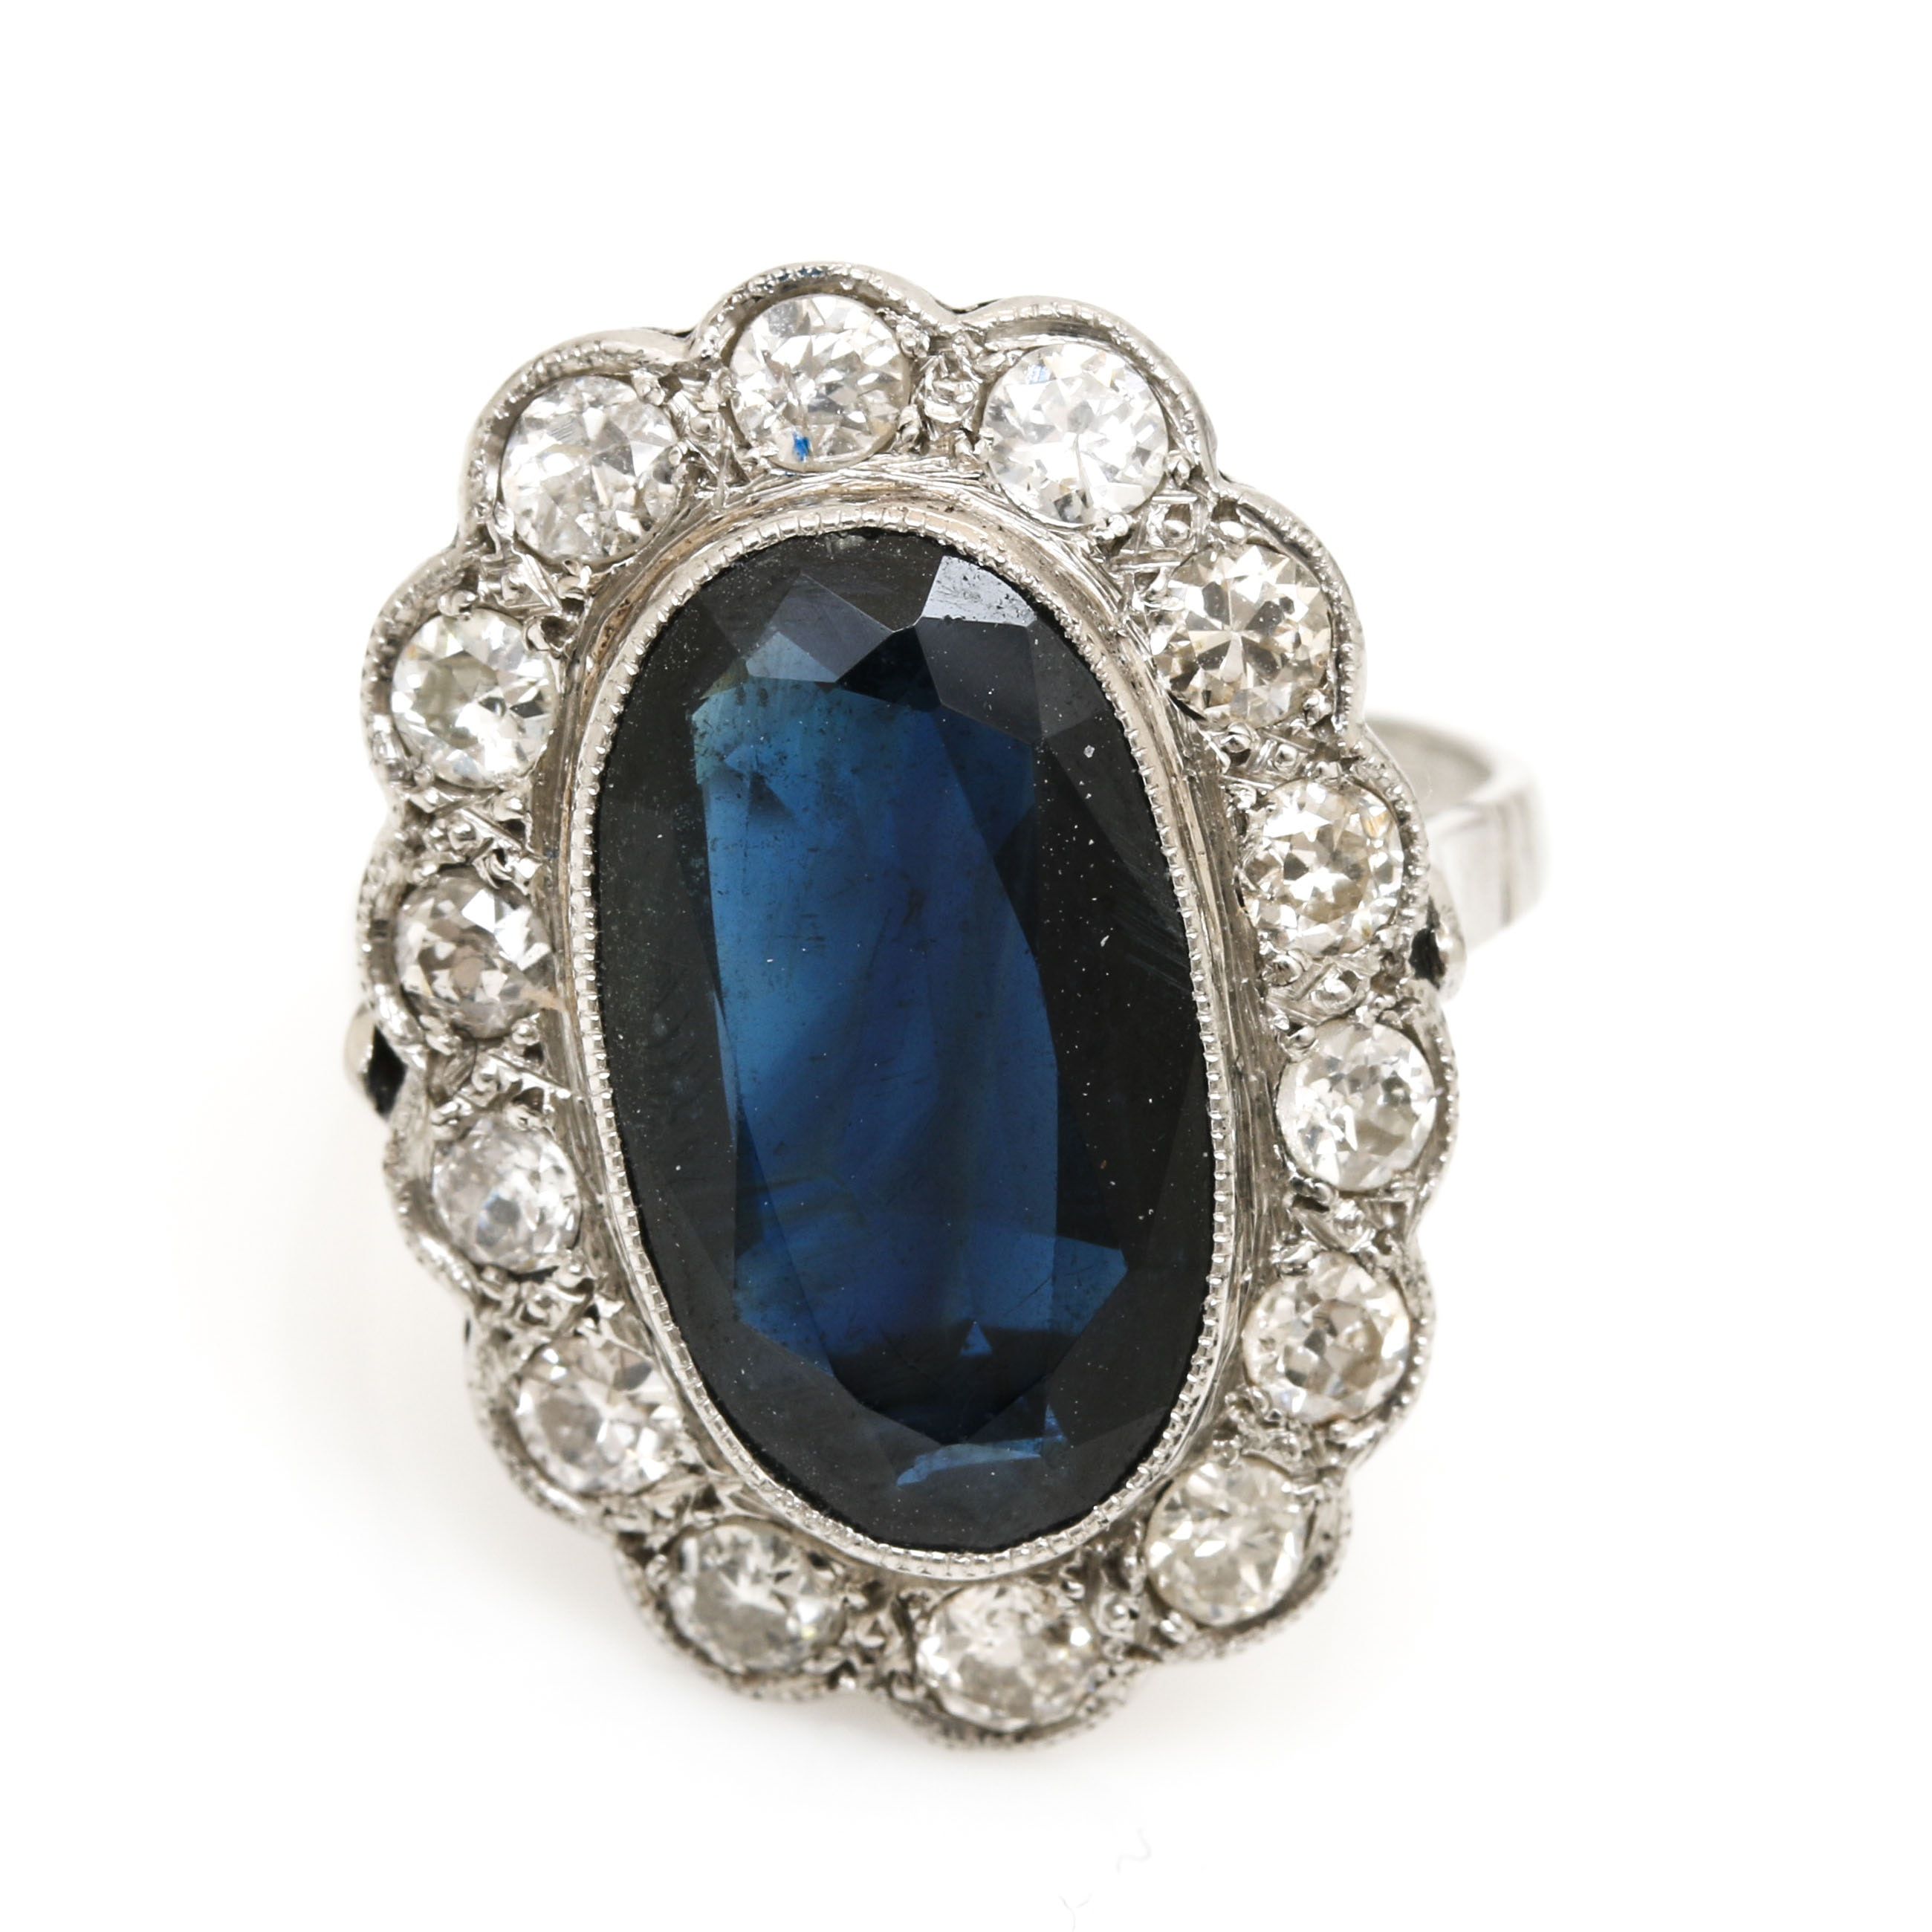 Platinum 3.47 CT Sapphire and Diamond Ring